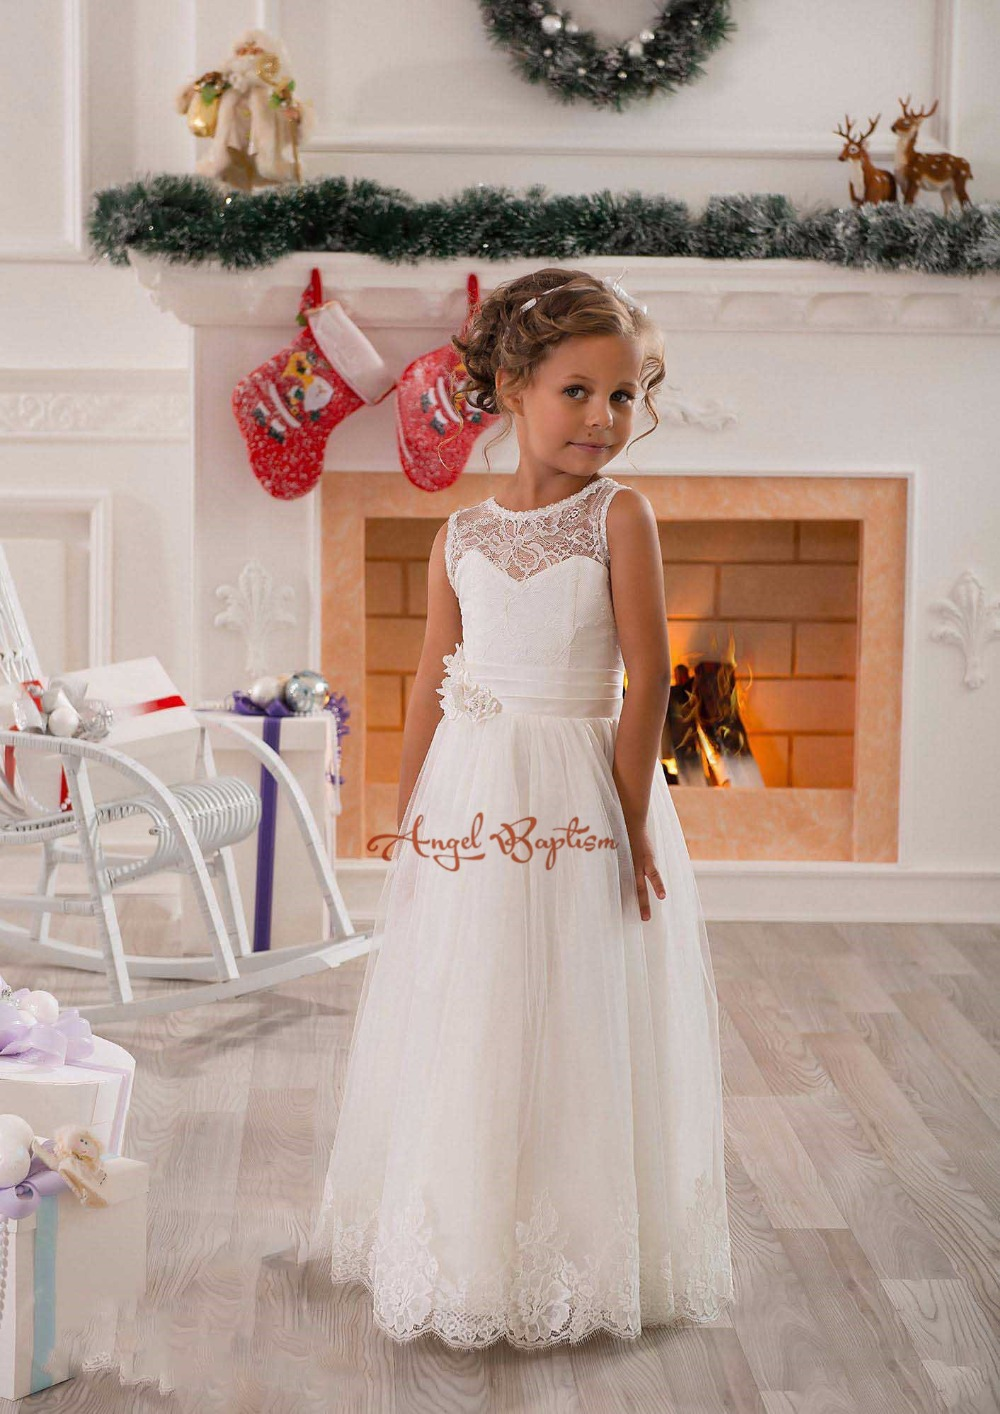 01d3b2069438a Vintage White/Ivory Luxury Lace Flower Girl Dress for Wedding Floor Length  first communion dresses for girls pageant dresses